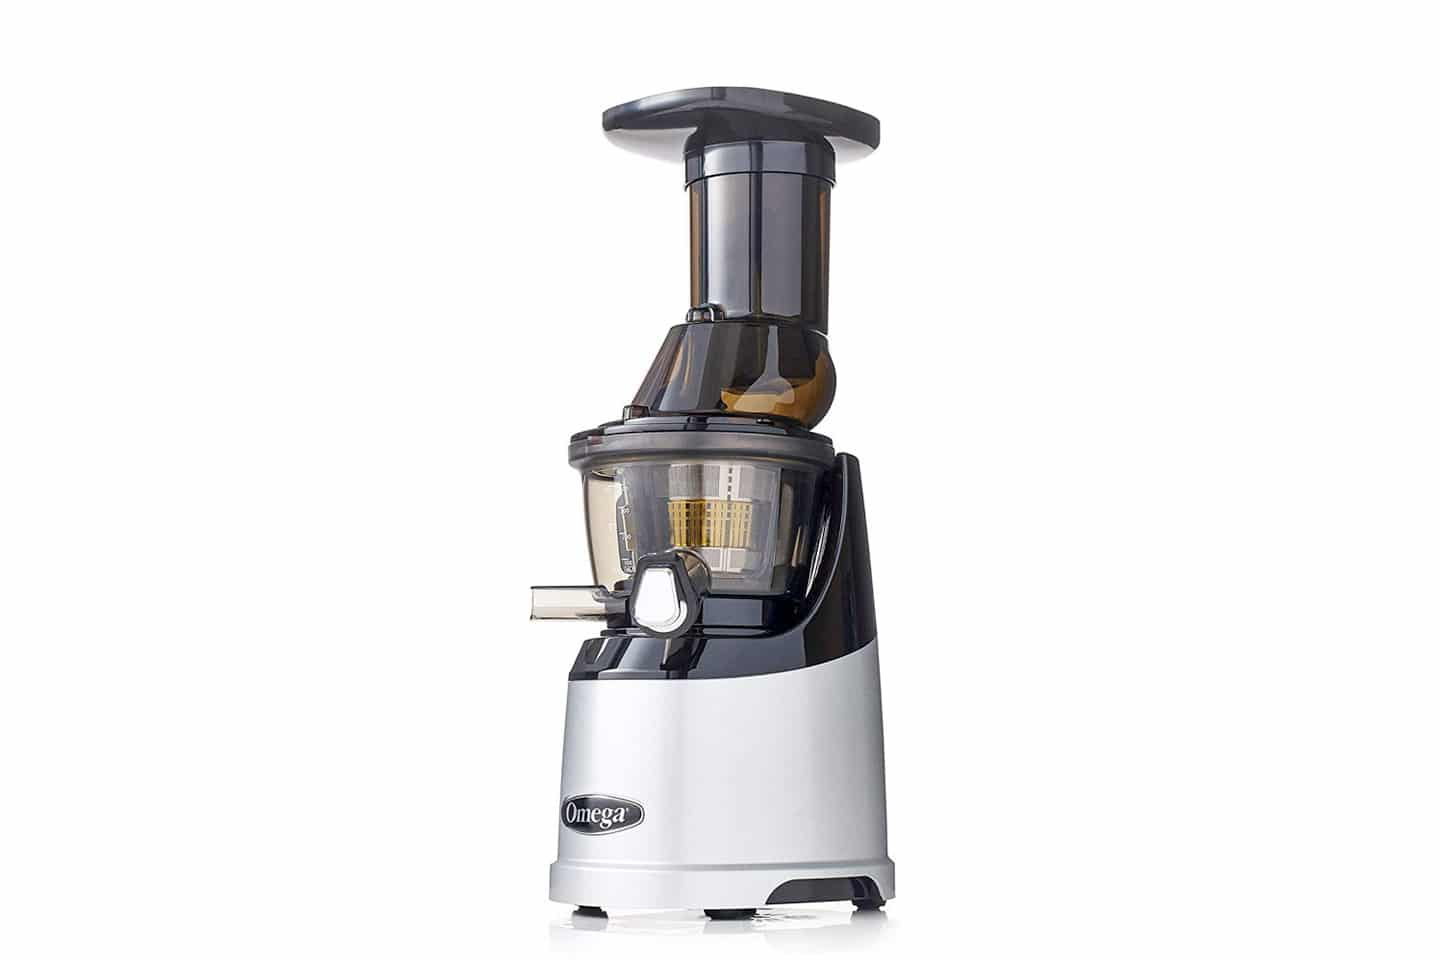 Omega MMV700S MegaMouth Vertical Low-Speed Juicer Review | Juicing Journal